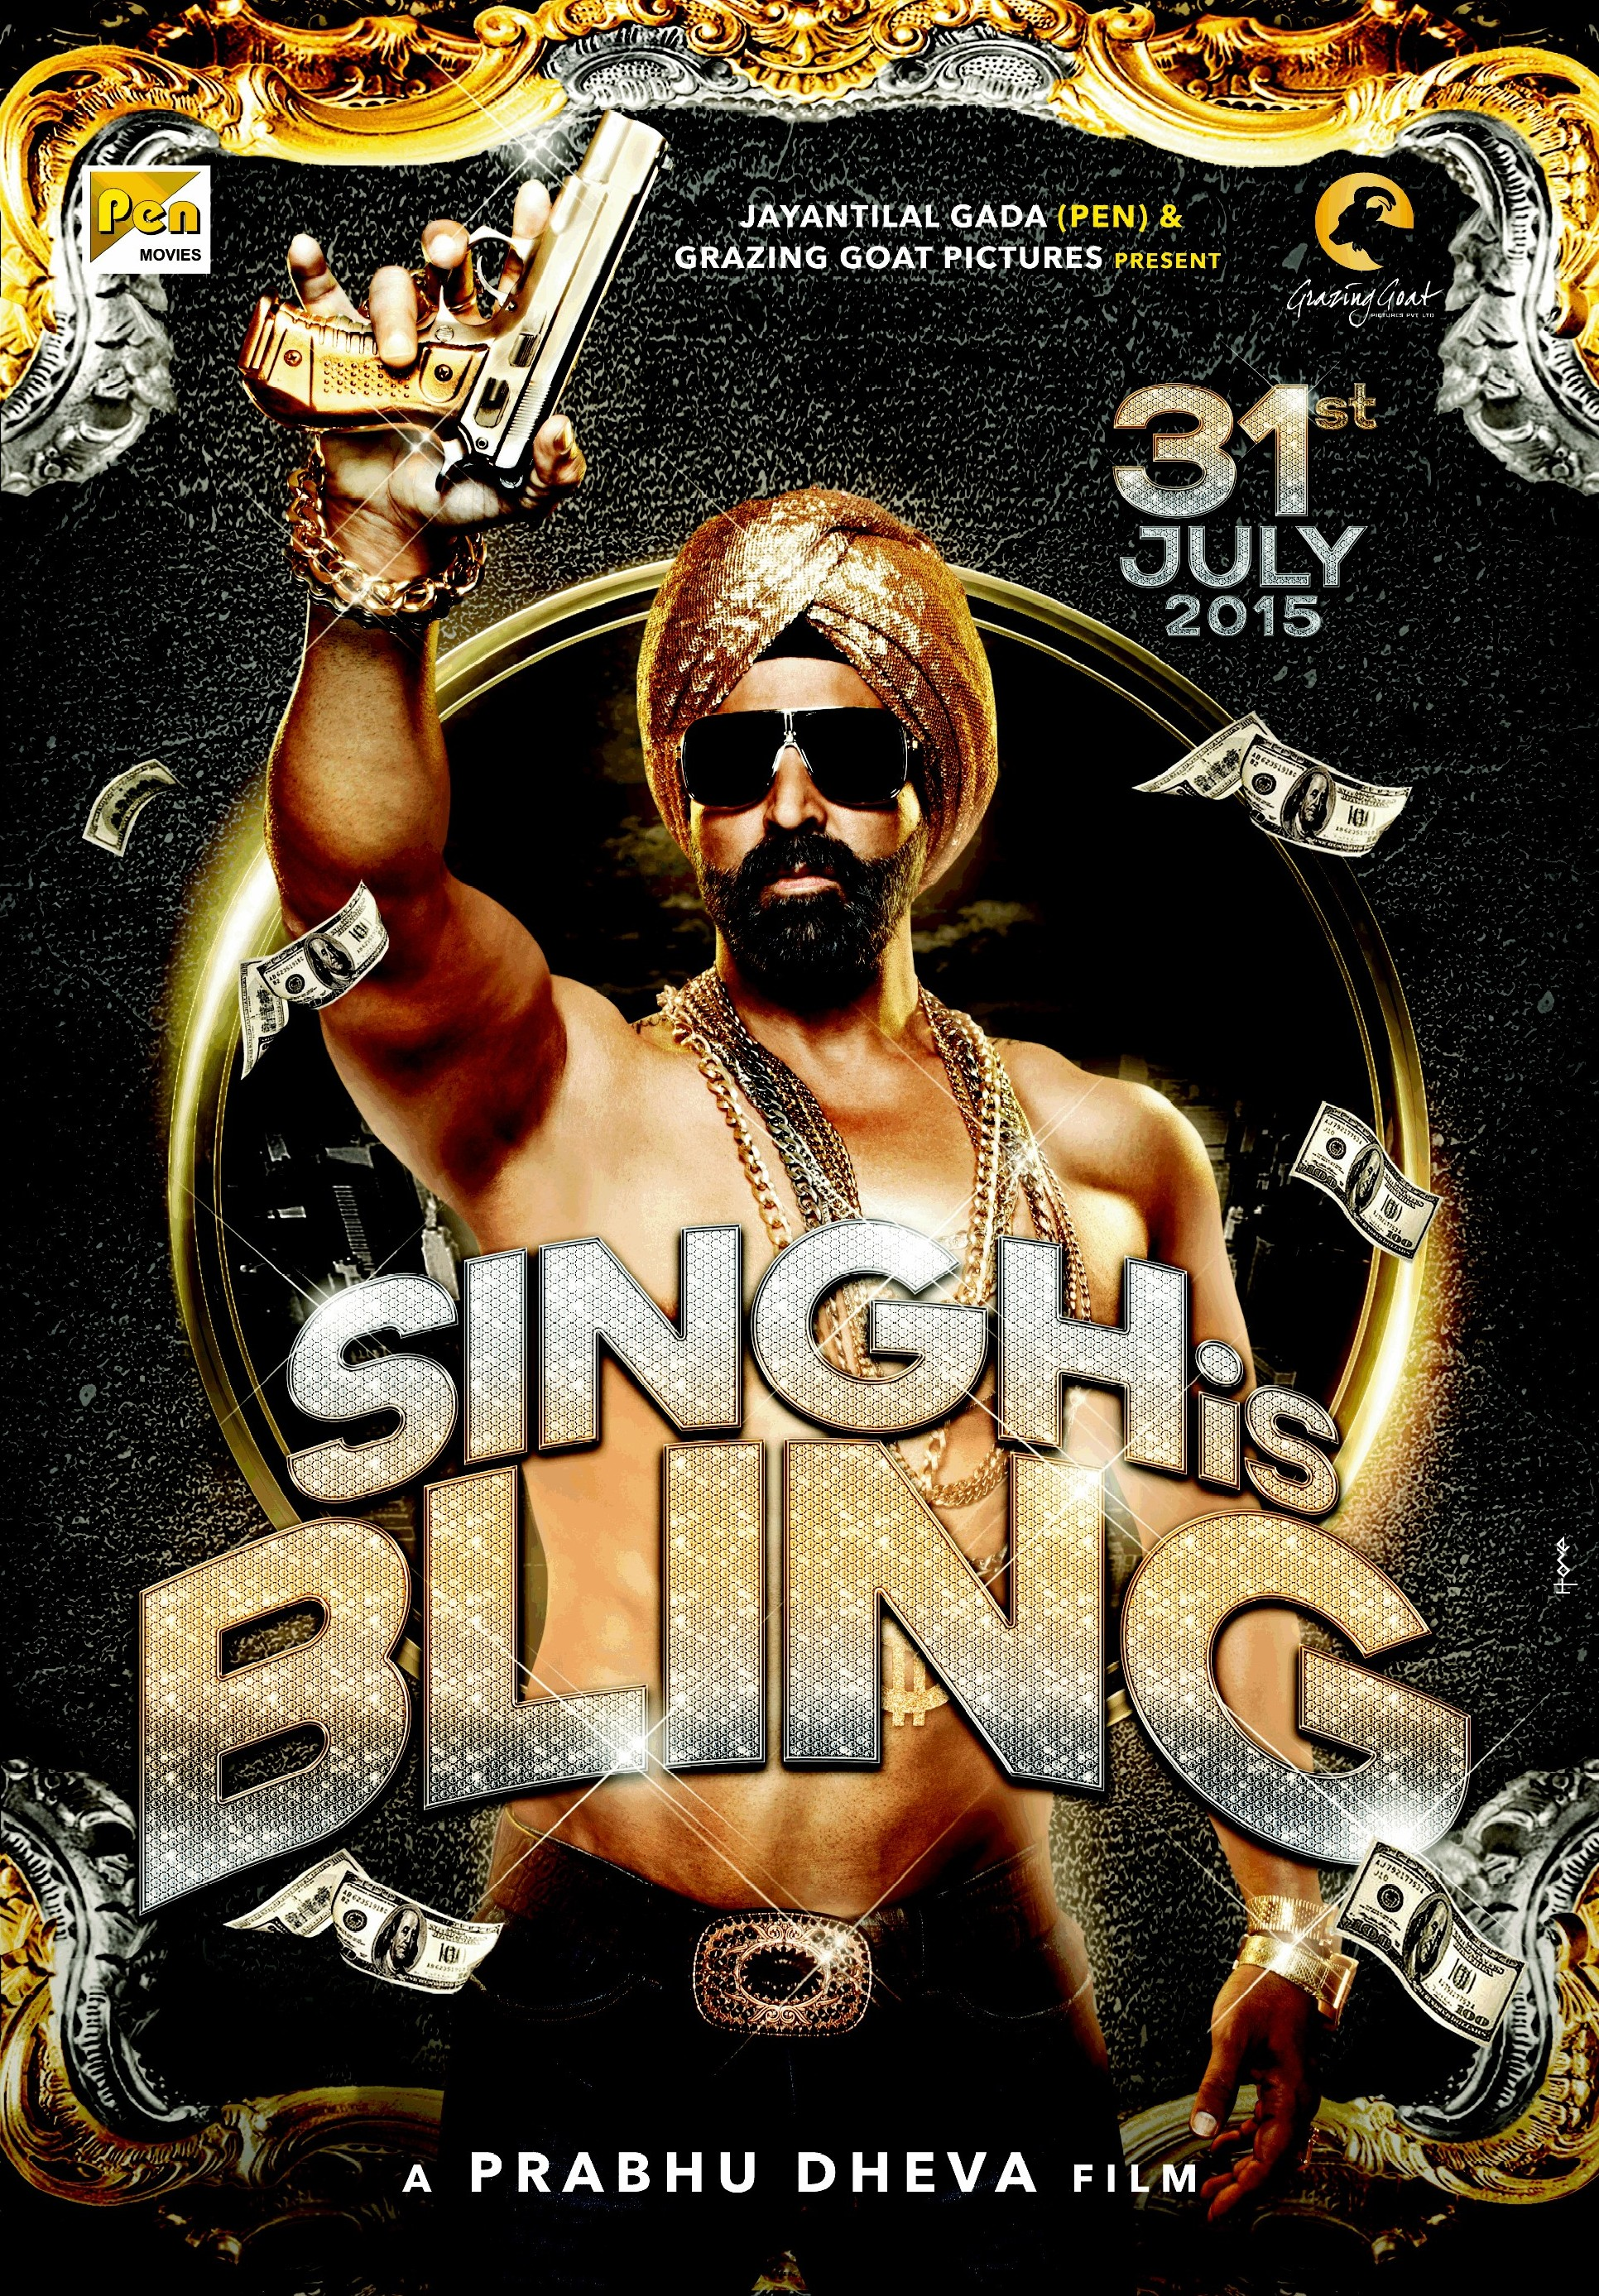 Singh-Is-Bling-First-look-motion-Movie-wiki-poster-story